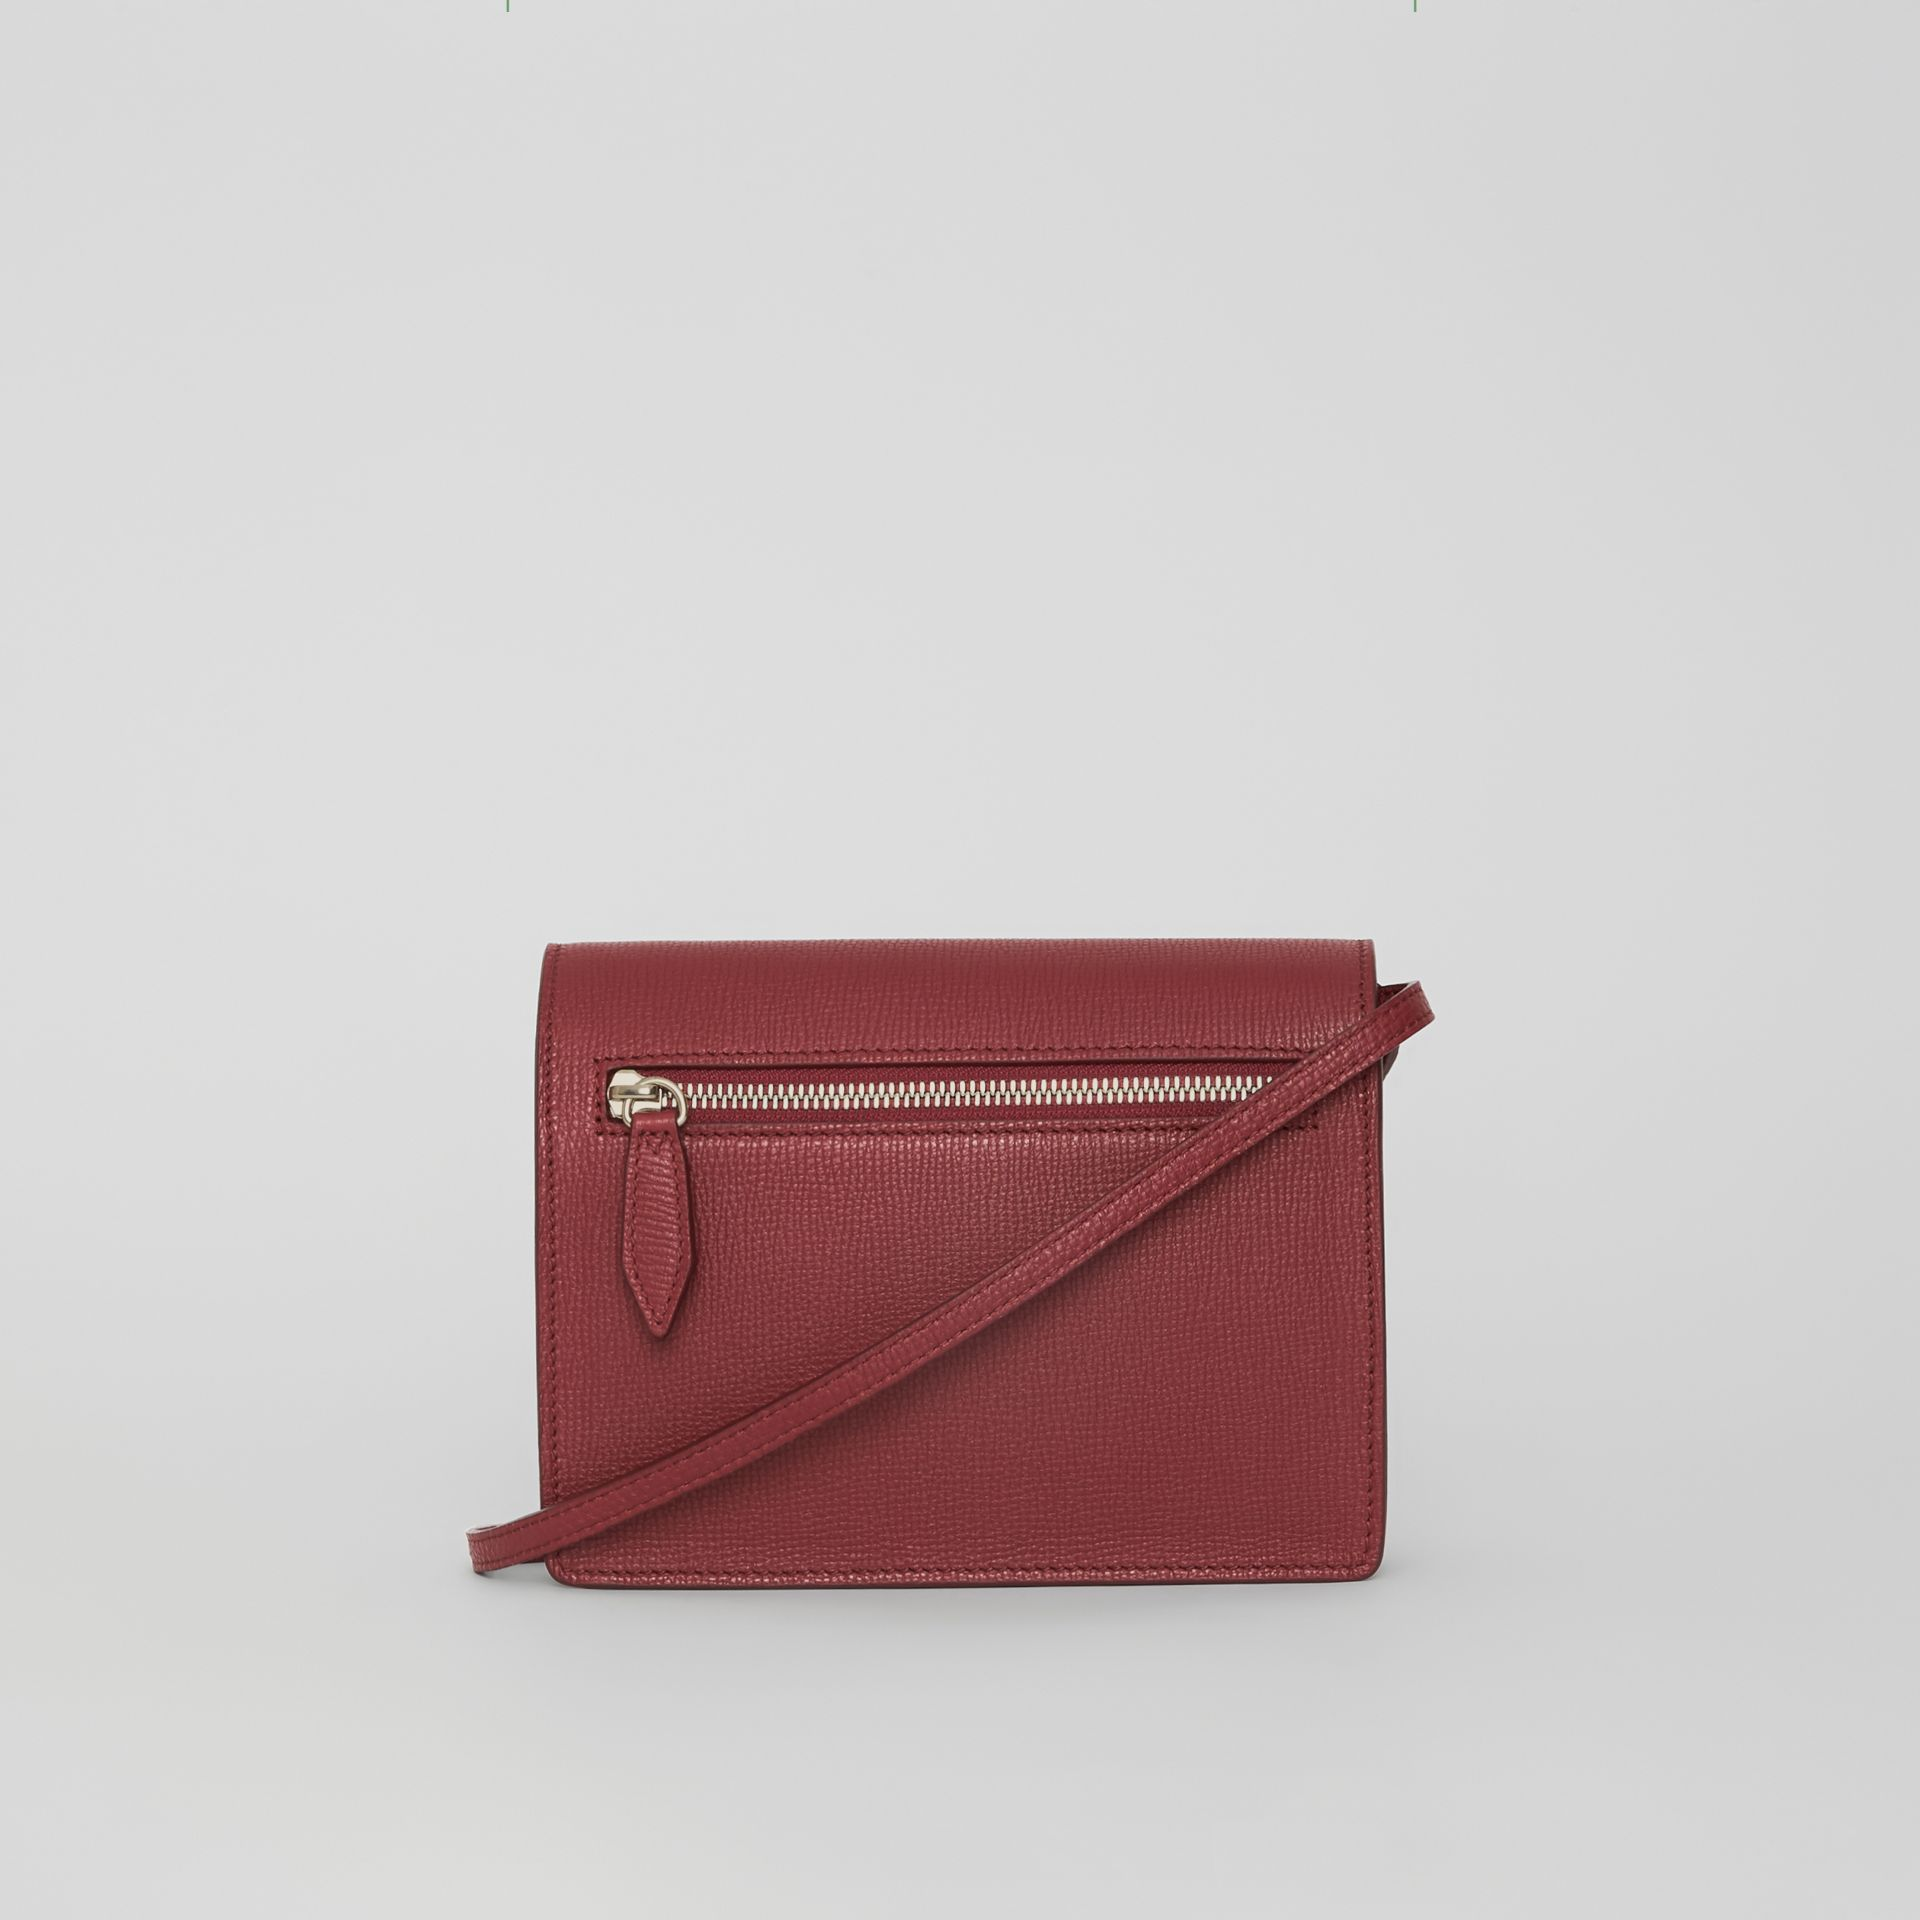 Mini Leather and Vintage Check Crossbody Bag in Crimson - Women | Burberry - gallery image 6